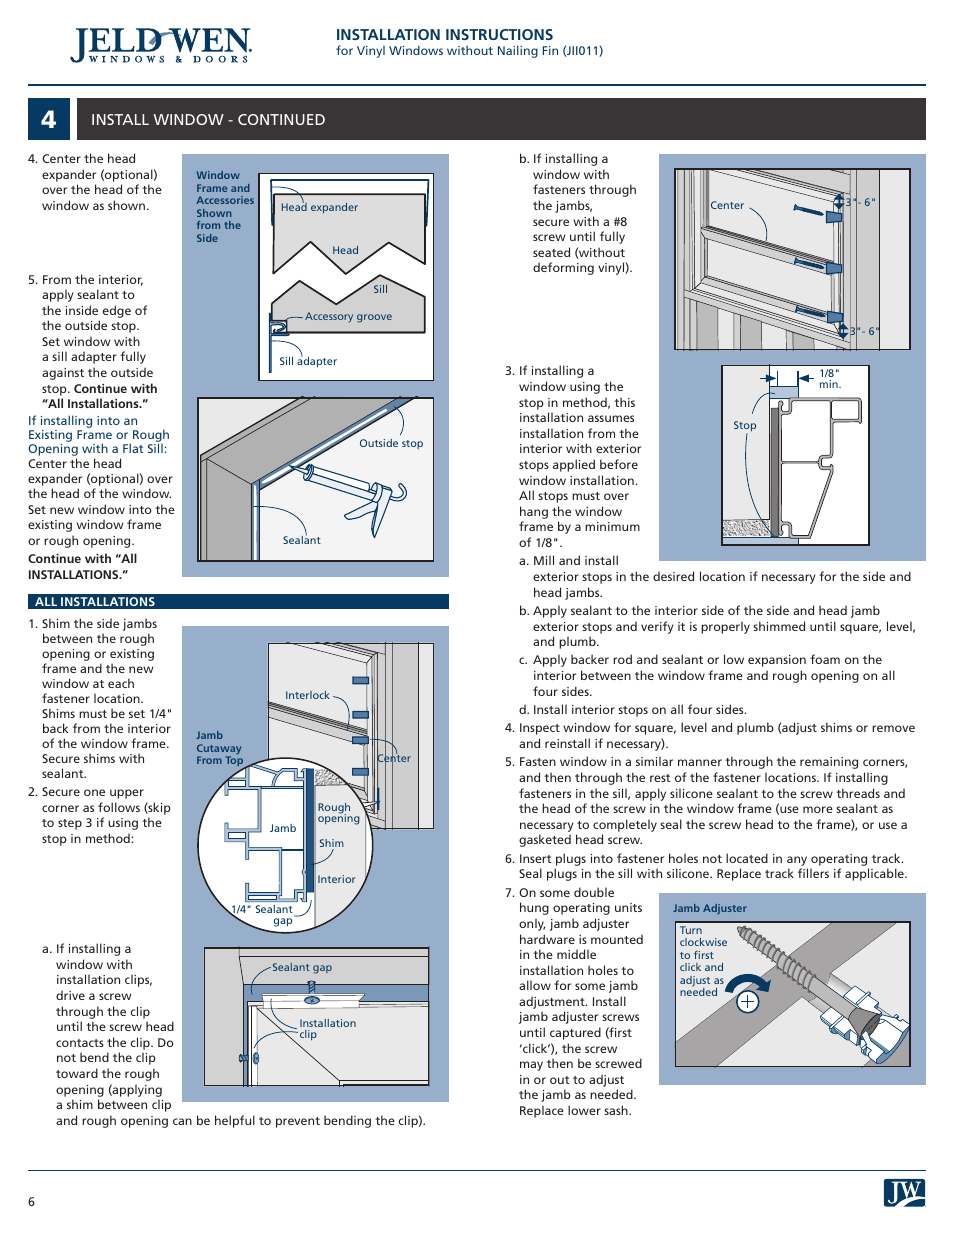 Installation Instructions Install Window Continued Jeld Wen Jii011 Vinyl Windows Without Nailing Fin User Manual Page 6 7